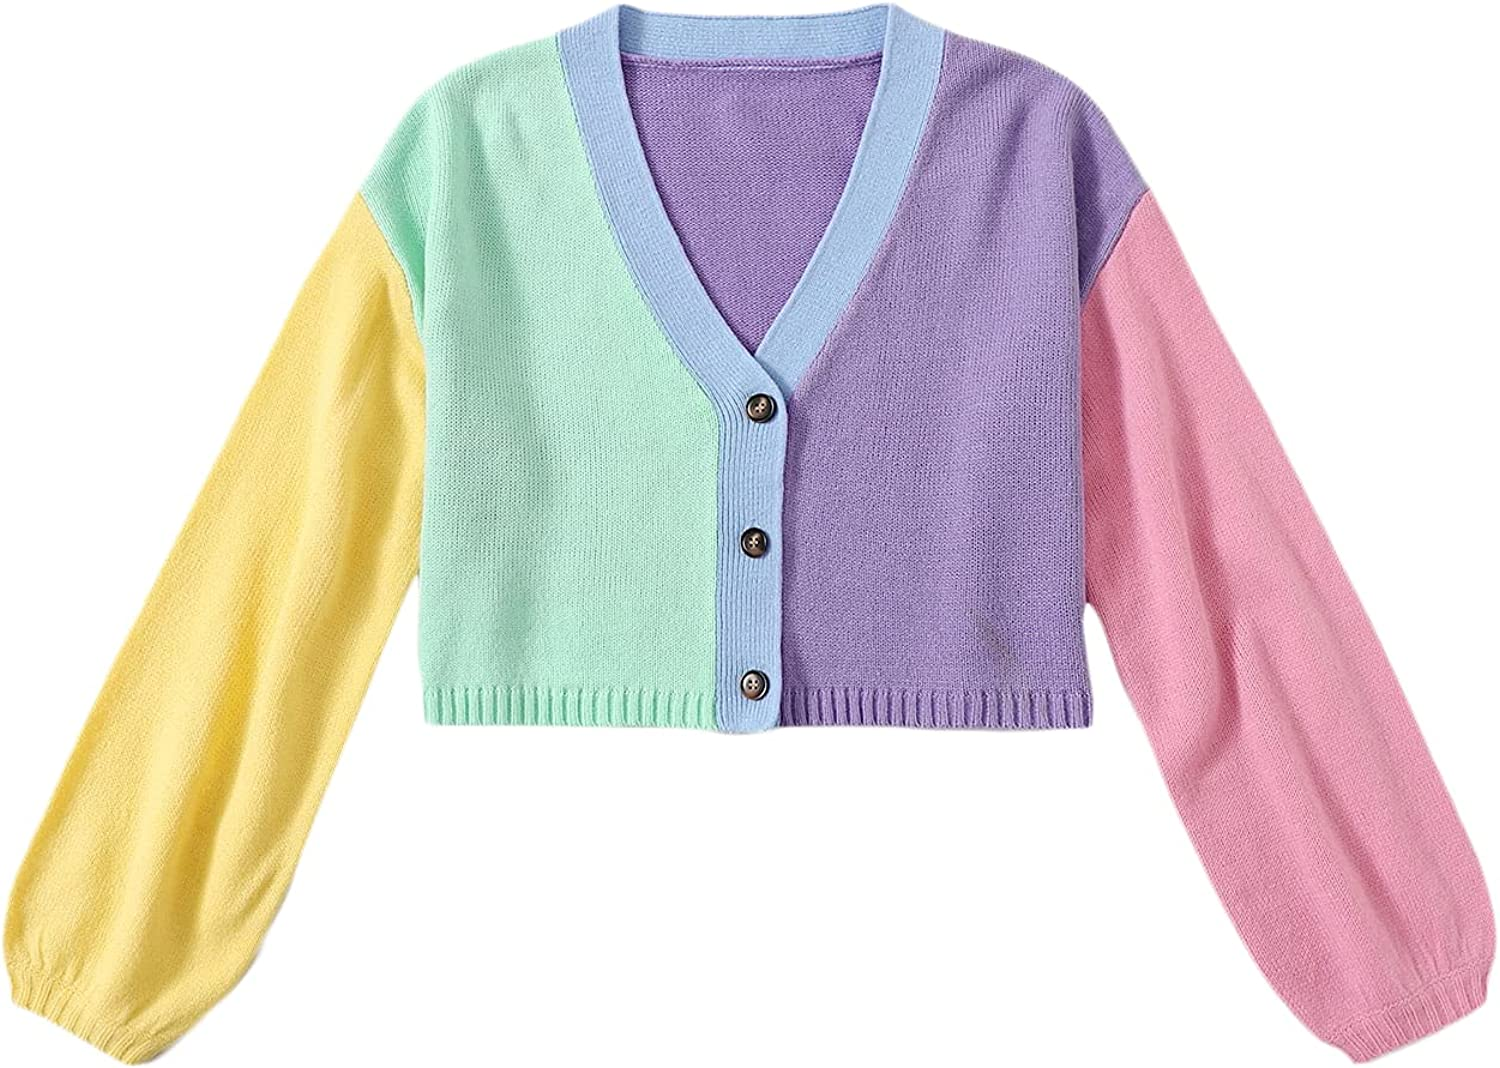 MakeMeChic Women's Colorblock V Neck Button Front Long Sleeve Cardigan Sweater Crop Top